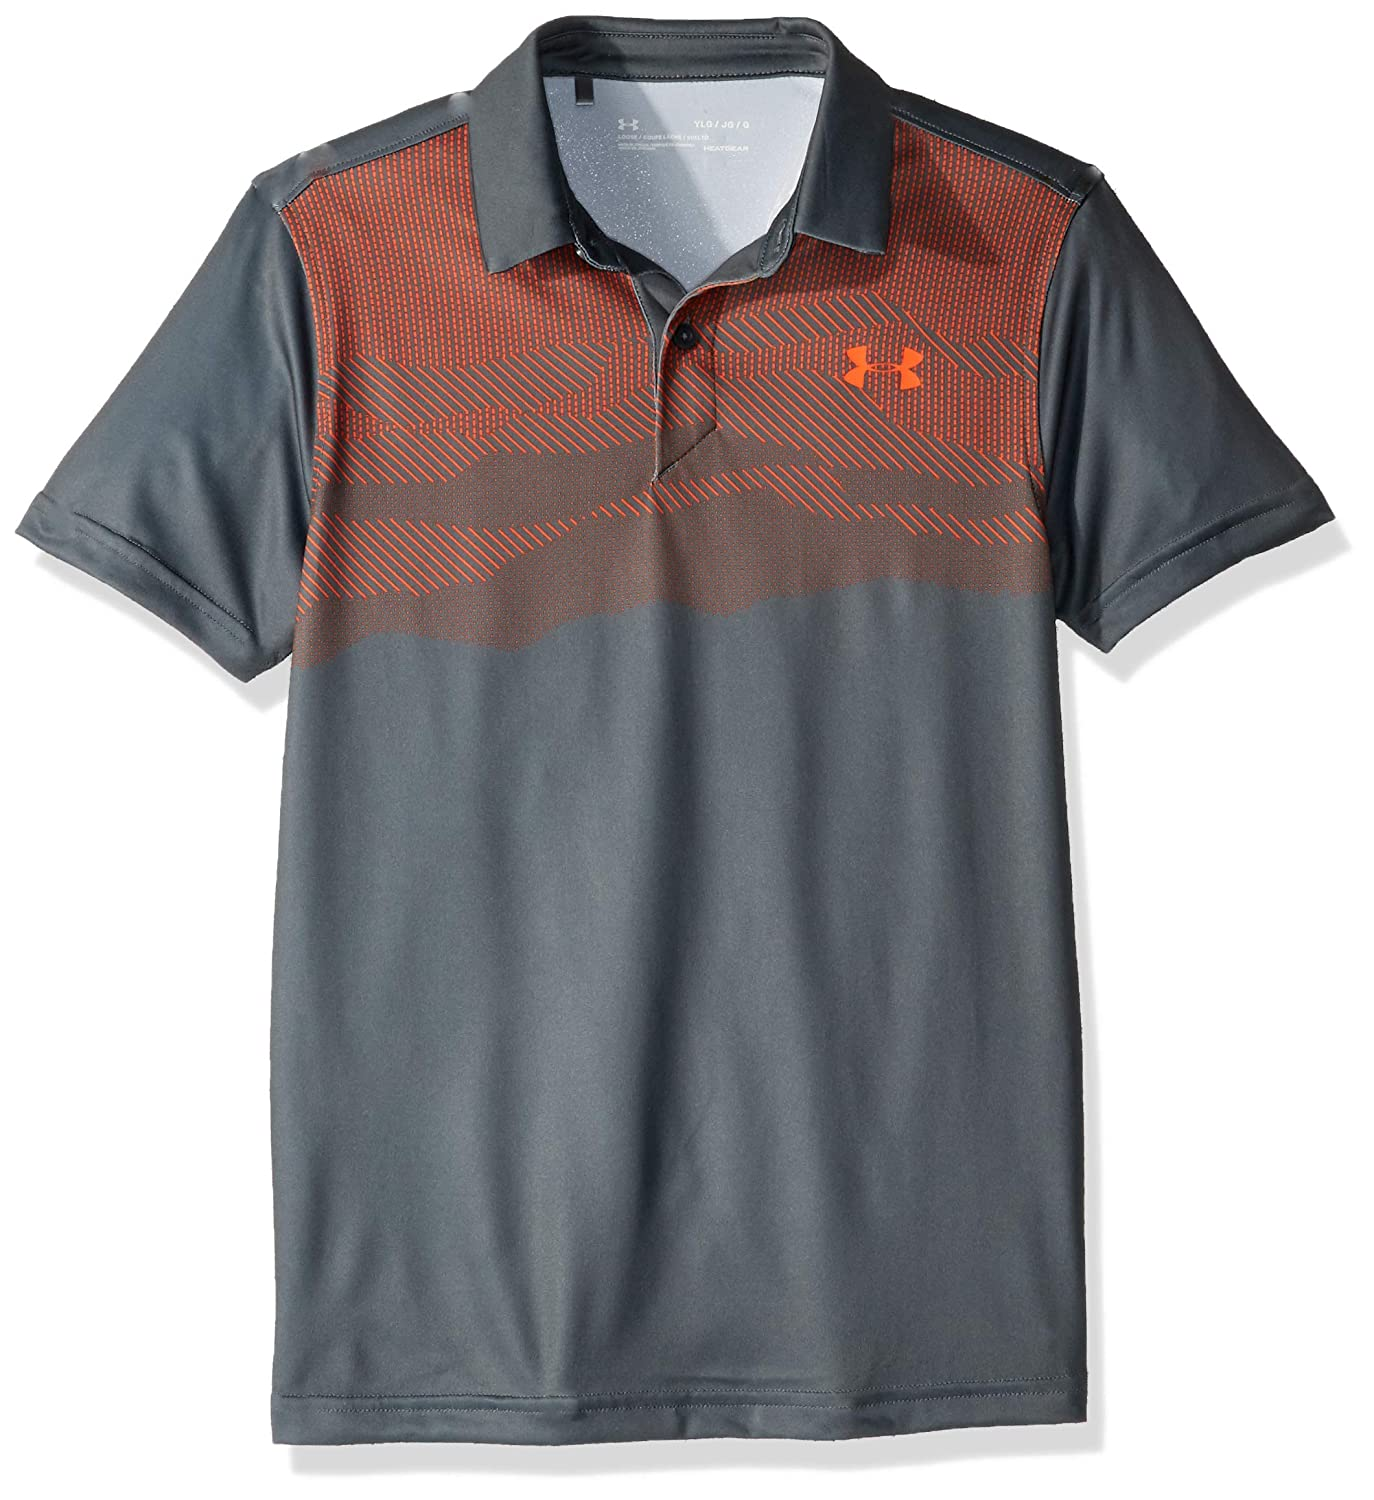 Under Armour Tour Tips Engineered Polo